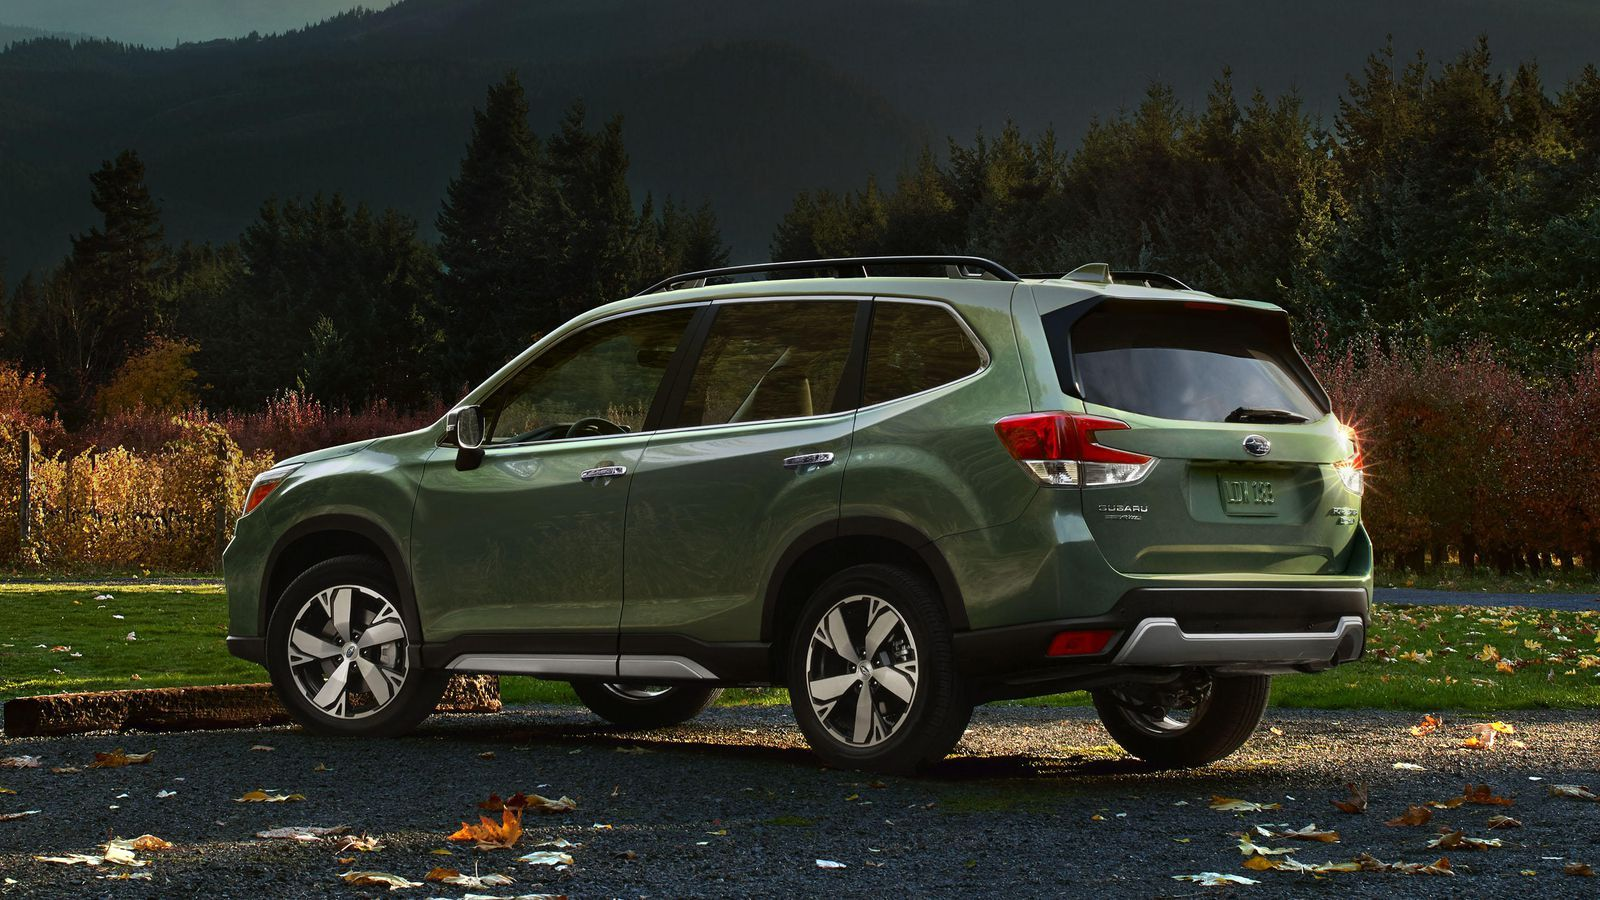 The 2019 Subaru Forester Will Come In Five Trim Levels Of Standard Premium Limited Touring And New Sport Subaru Forester Subaru Xt Subaru